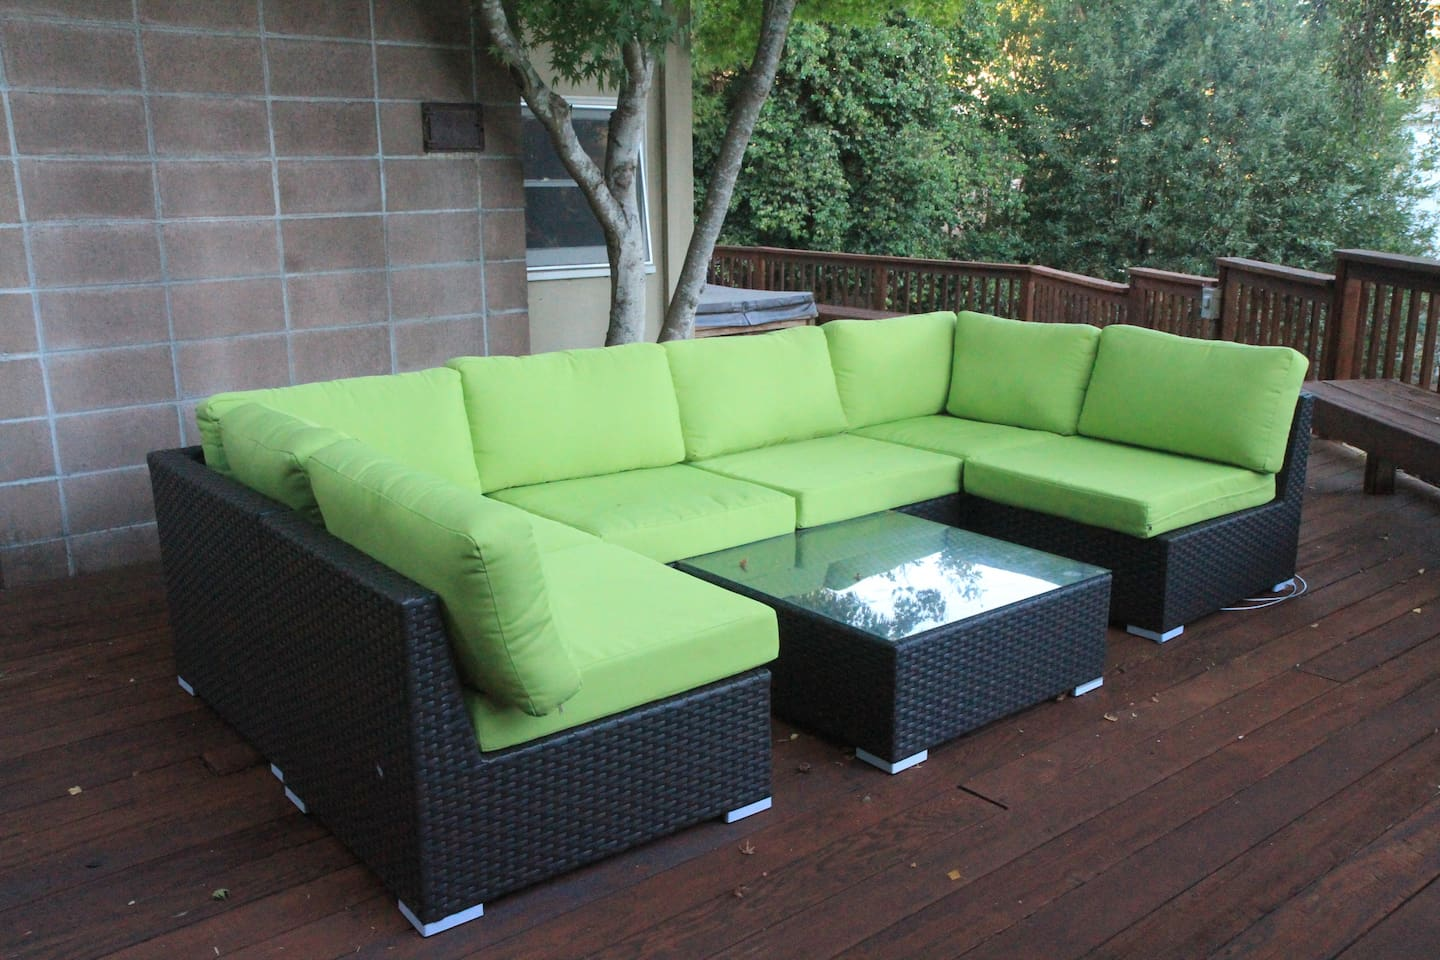 Enjoy outdoor seating on the deck.